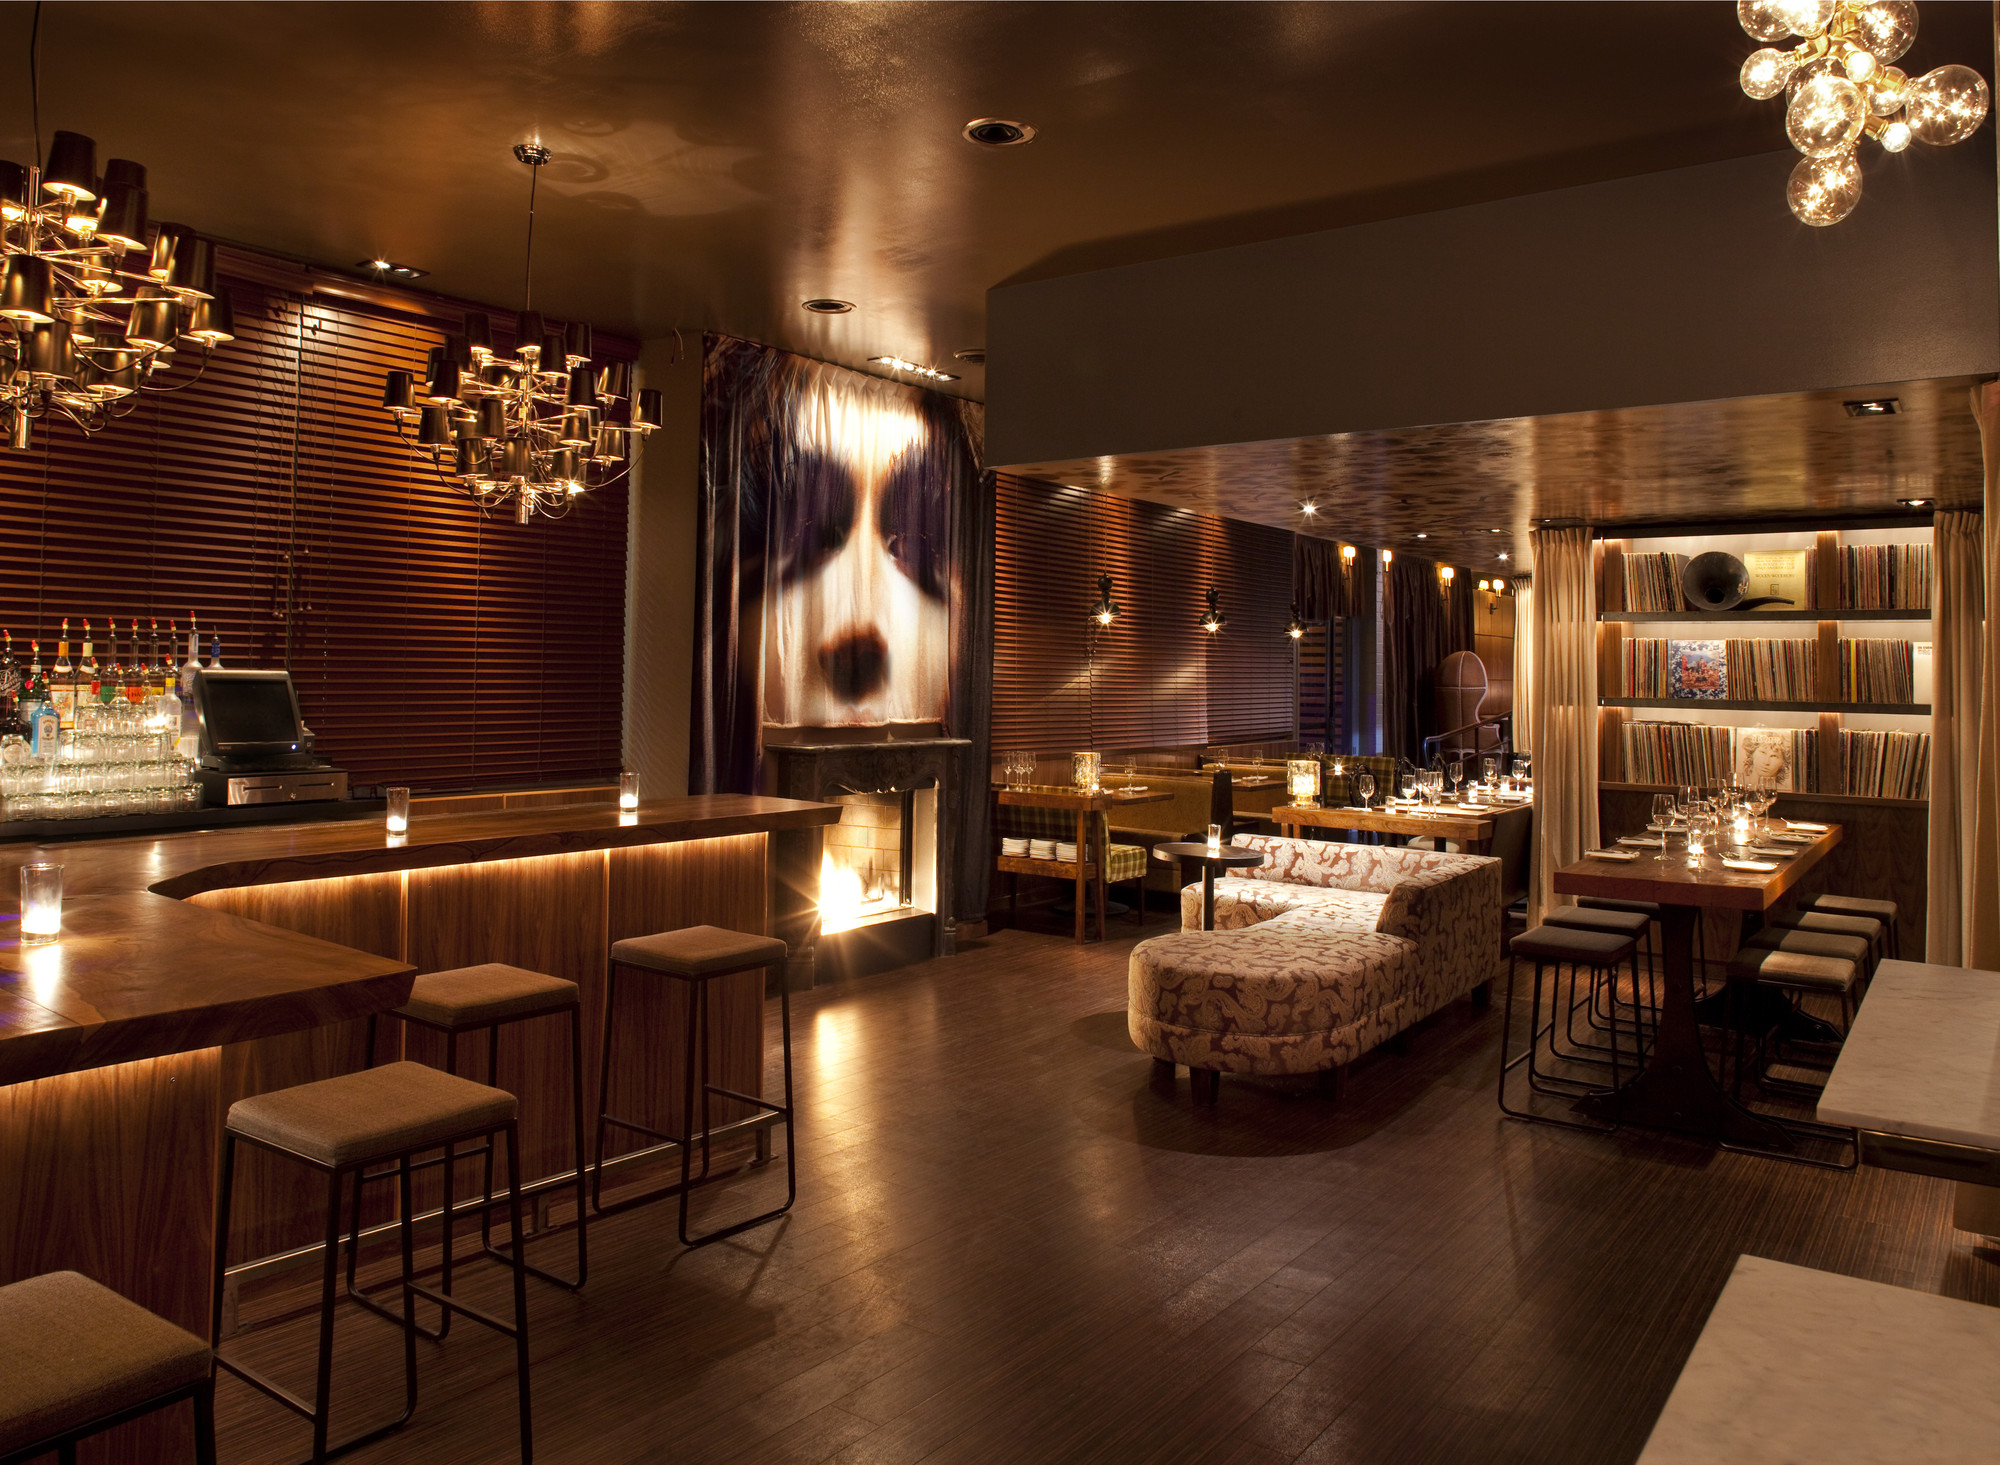 Chambers eat drink mr important design archdaily for Deco lounge bar restaurant